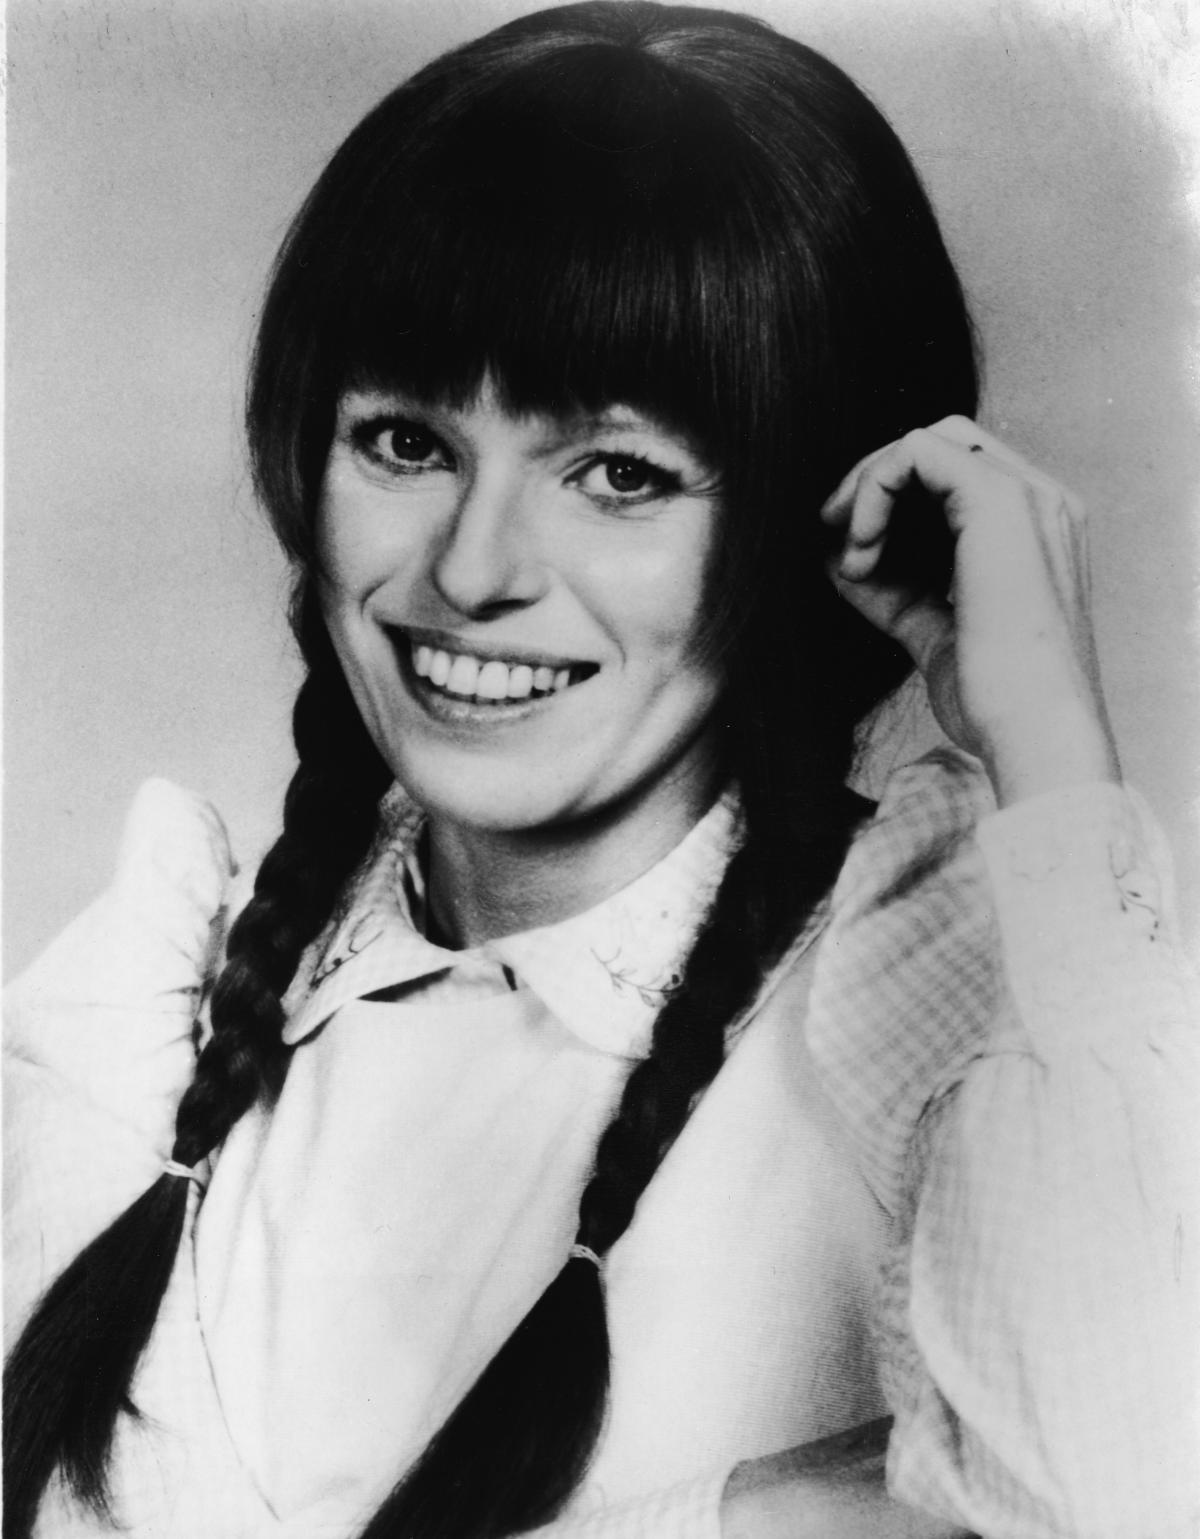 In 1976 Louise Lasser starred as a fictional housewife from Fernwood, Ohio, in Mary Hartman, Mary Hartman.